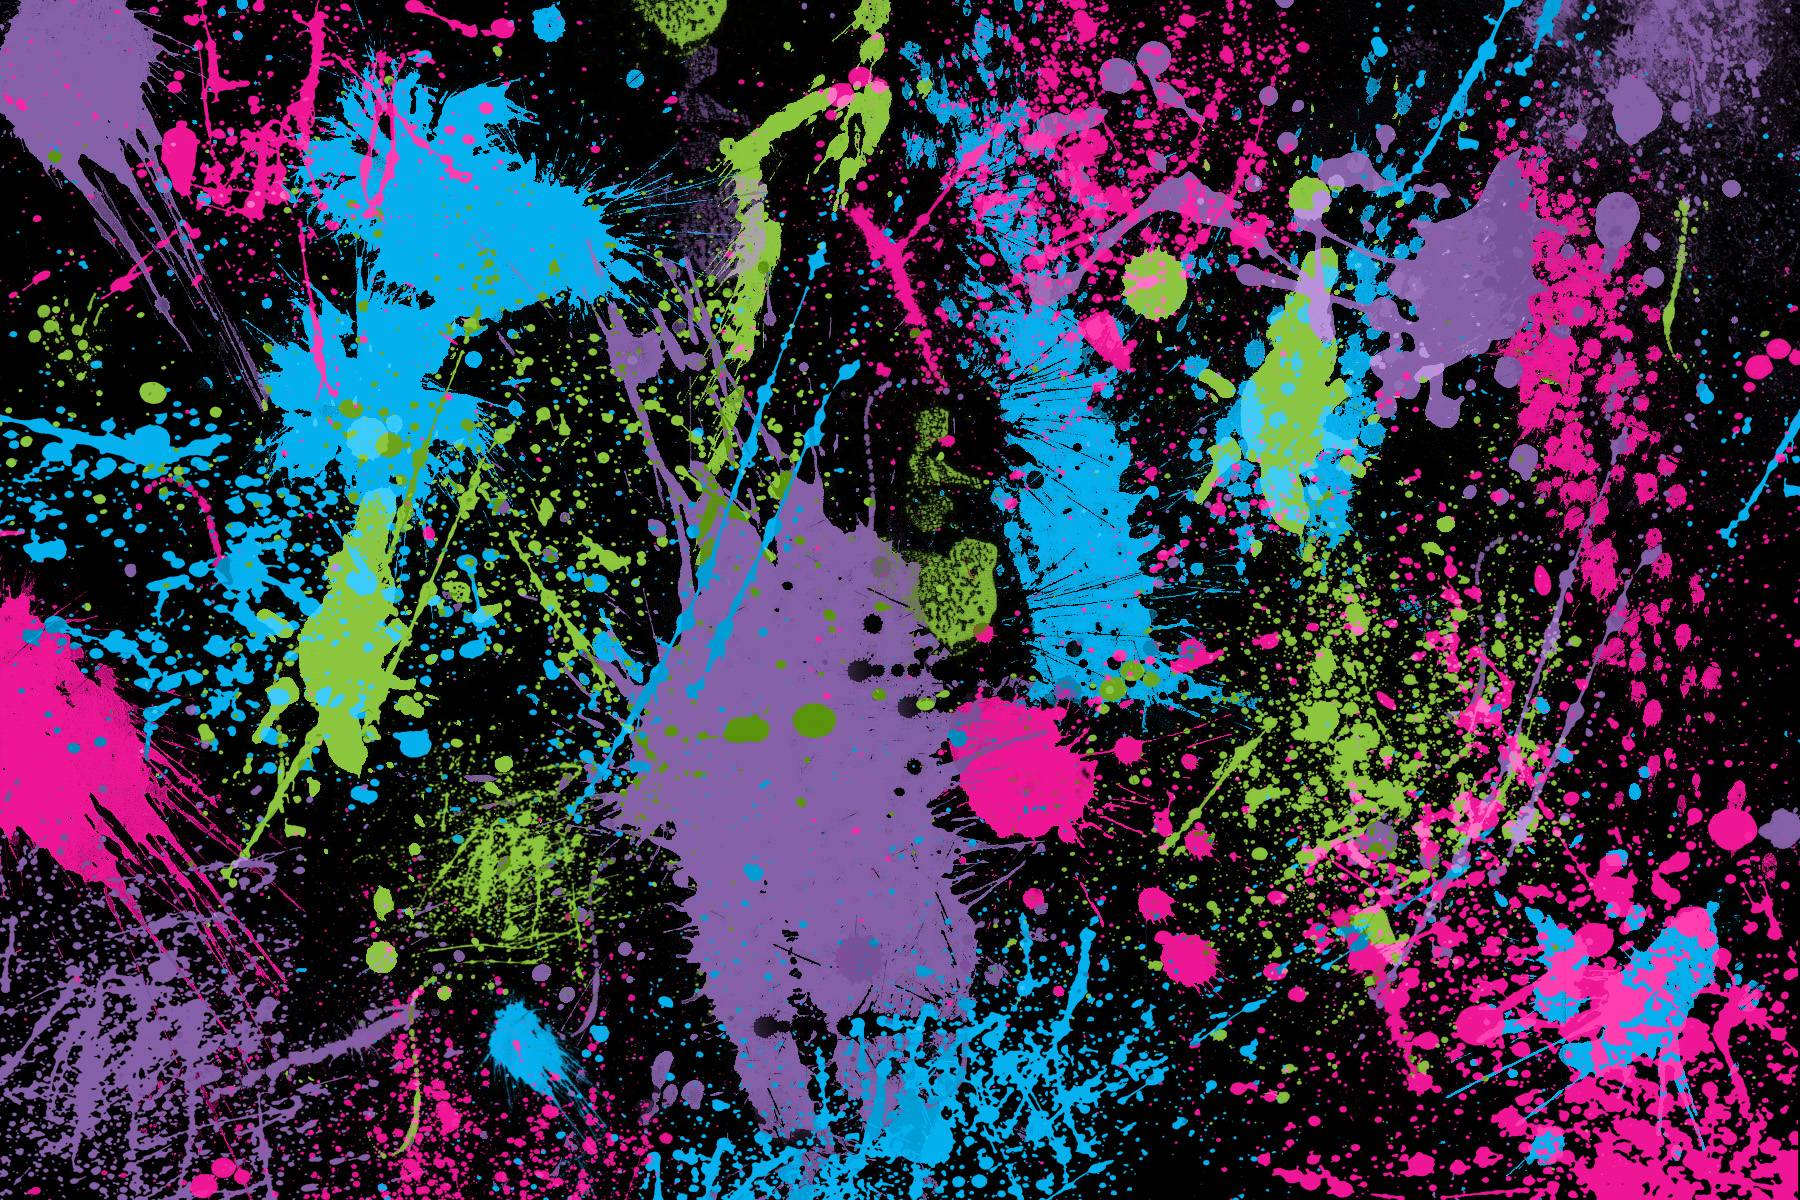 Paint Splatter Wallpapers - Wallpaper Cave